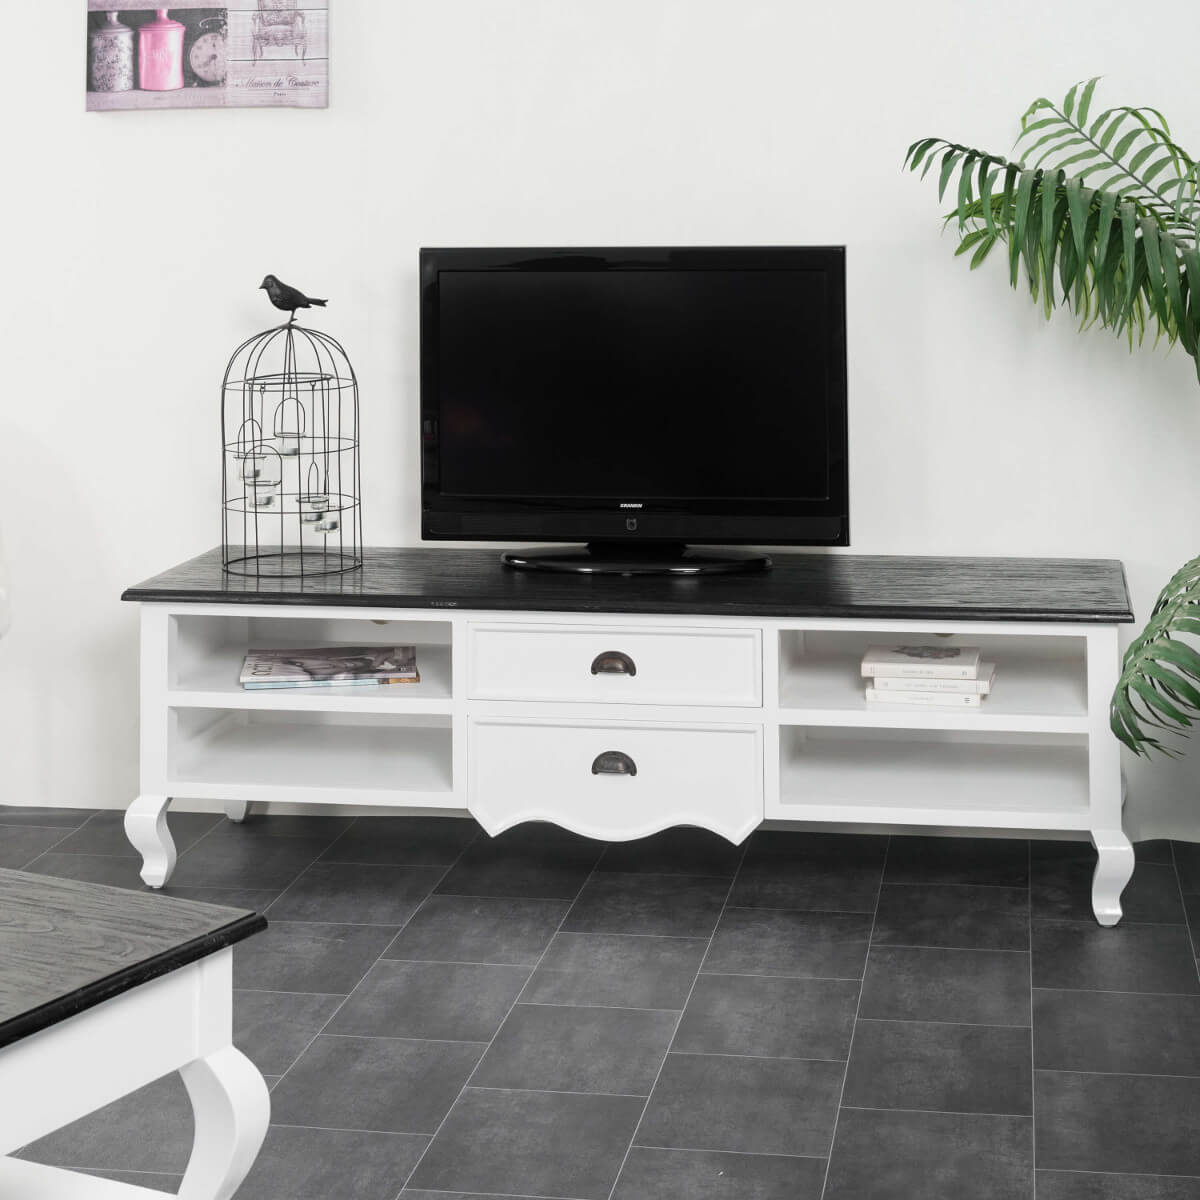 Meuble Tv Baroque Meuble Tv Acajou Blanc Rectangle Idao 170 Cm # Meuble Tv En Acajou